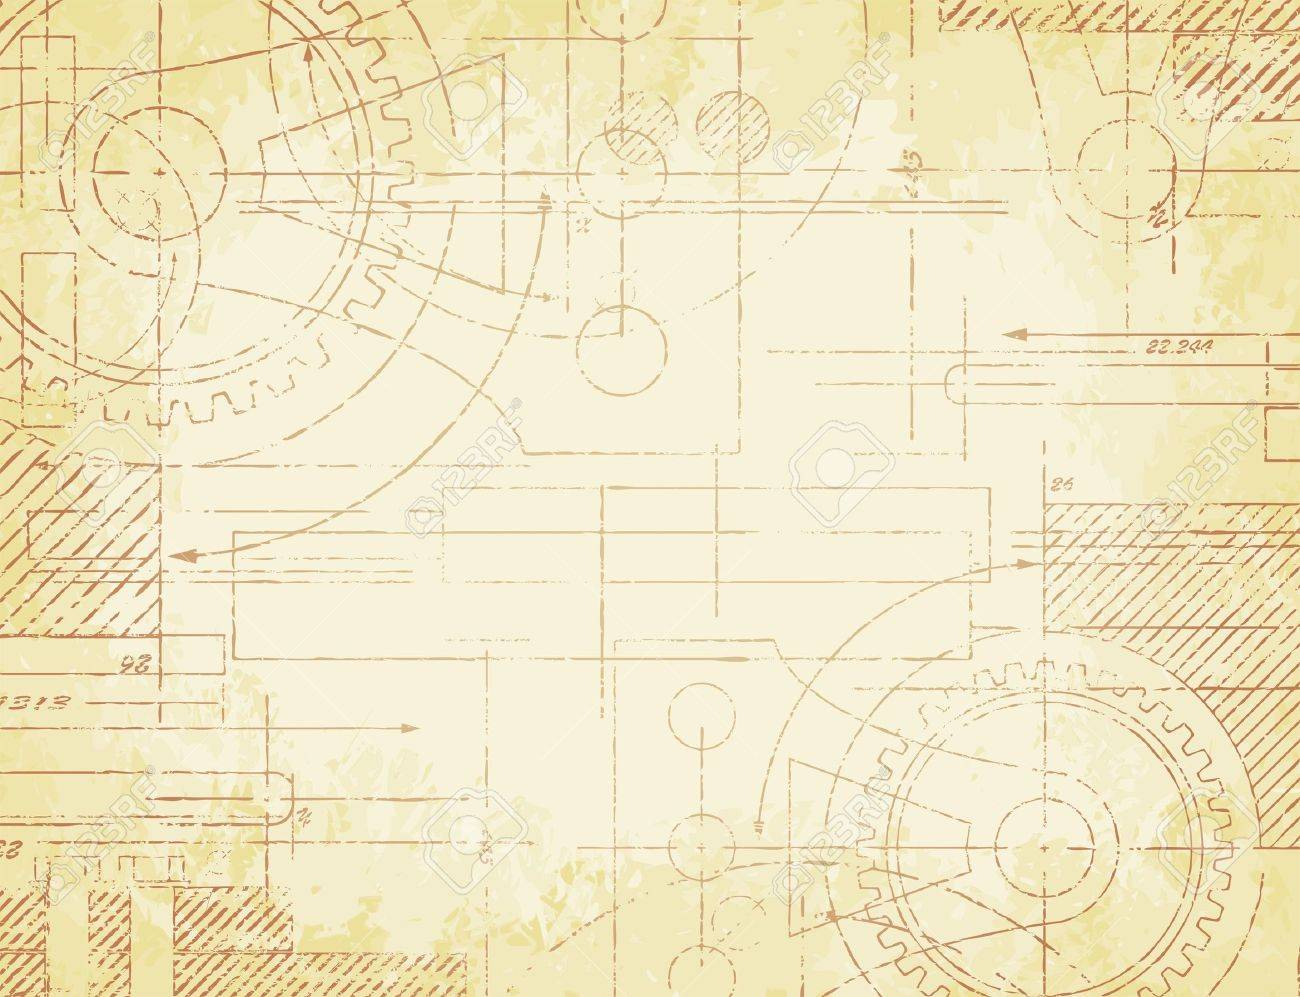 Grungy old technical blueprint illustration on faded paper grungy old technical blueprint illustration on faded paper background stock vector 17923653 malvernweather Images